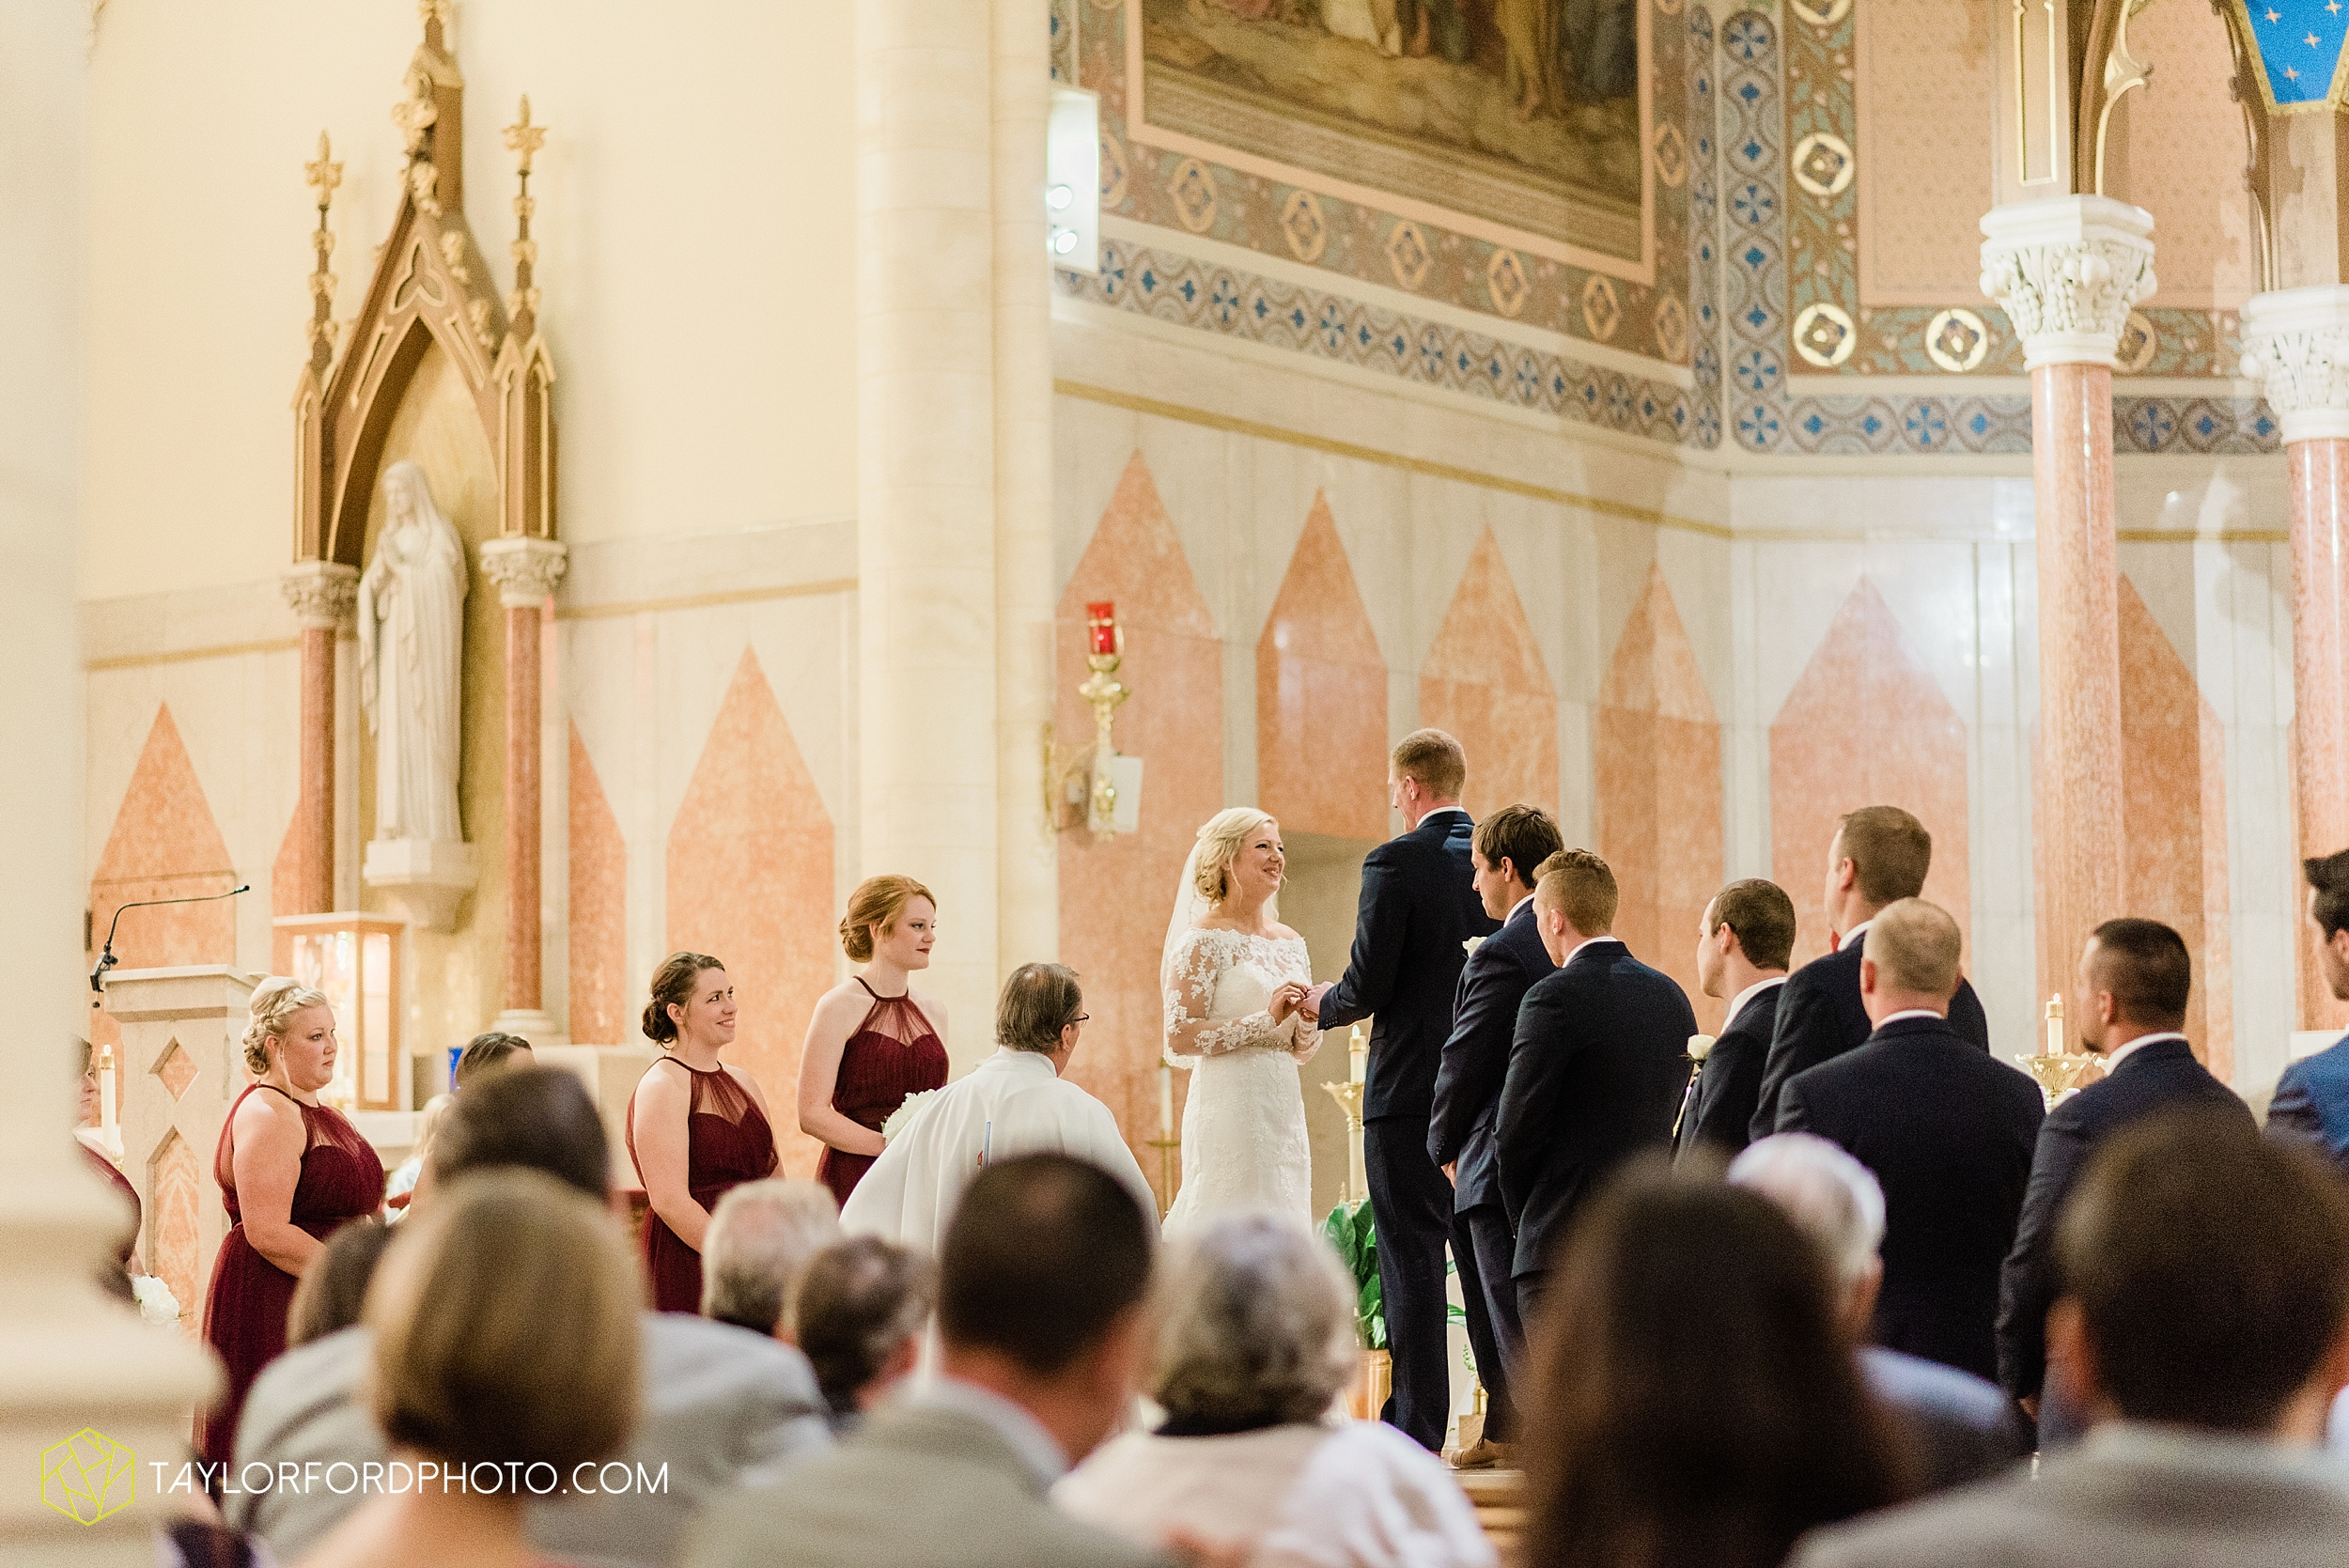 gayle-rayman-mike-steele-ottoville-ohio-wedding-immaculate-conception-parish-center-wedding-sycamore-lake-winery-wannamachers-photographer-taylor-ford-photography_0397.jpg